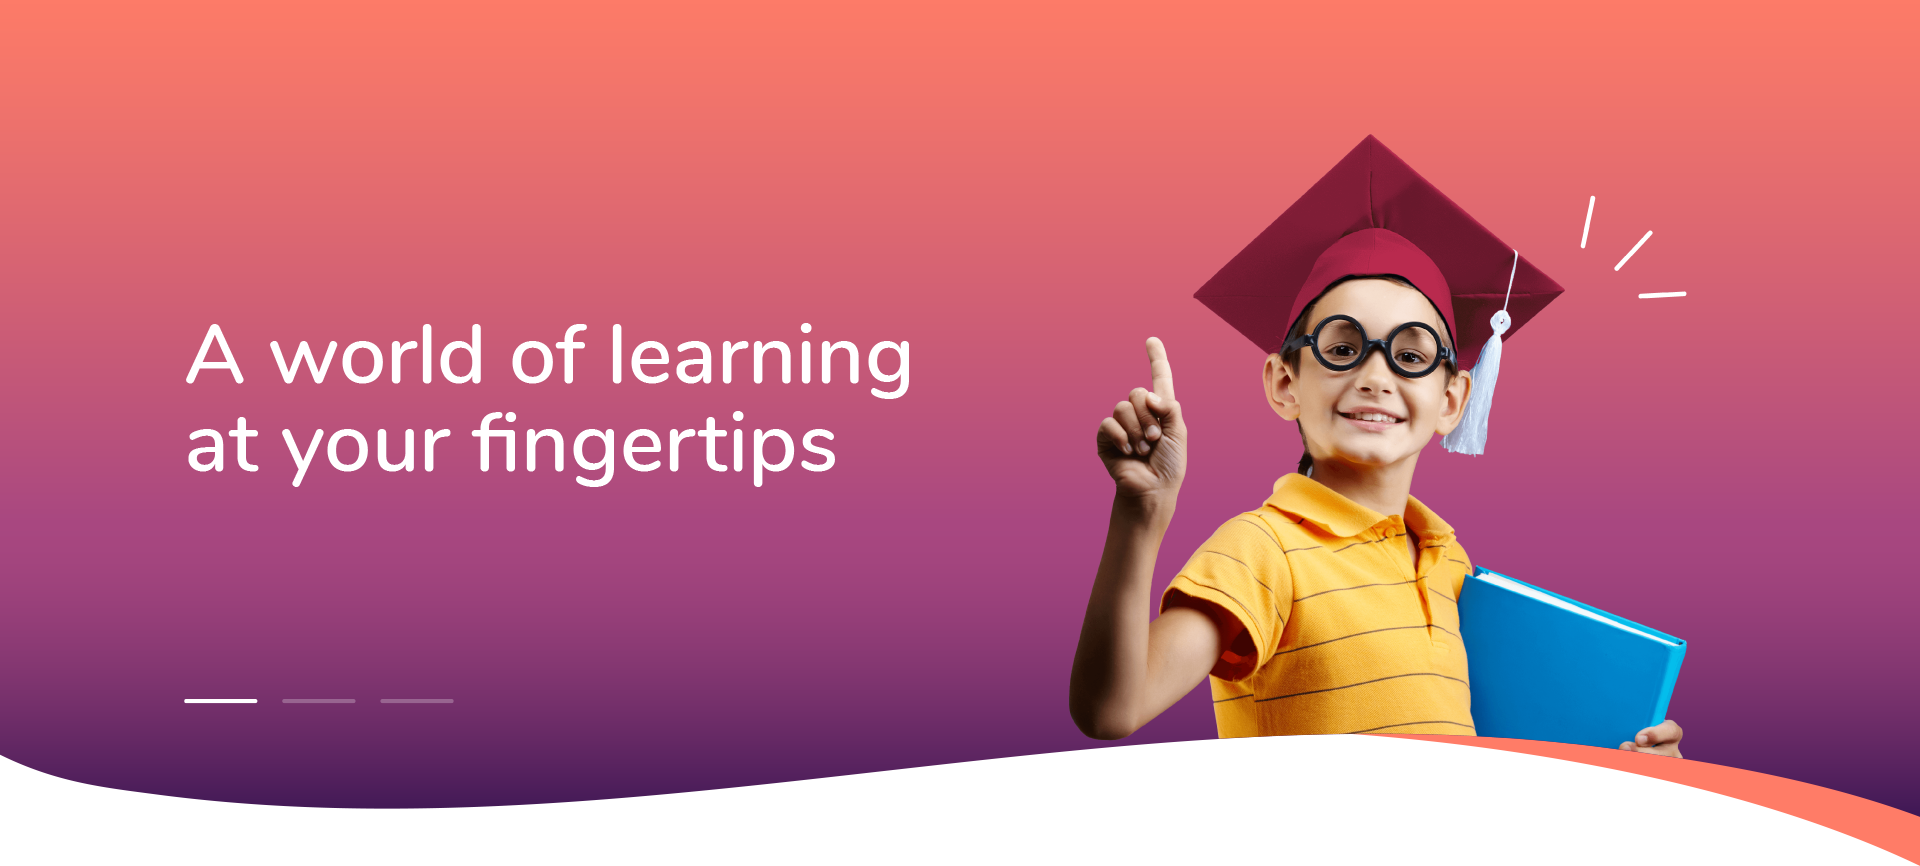 a world of learning at your fingertips